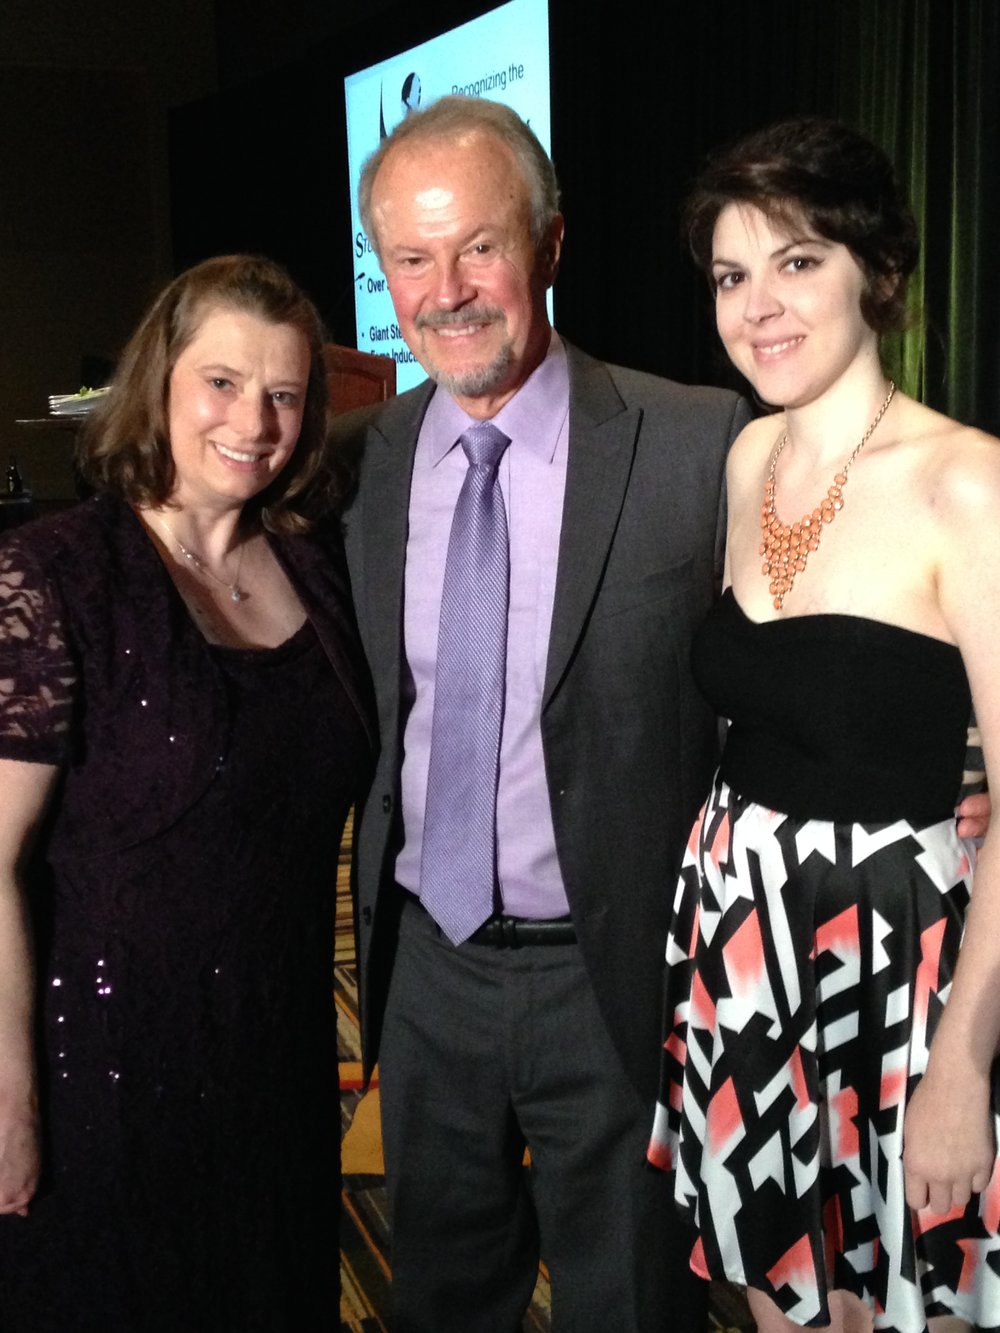 From left to right: Jodi Norton, Richard Lapchick, Bianca Augusto